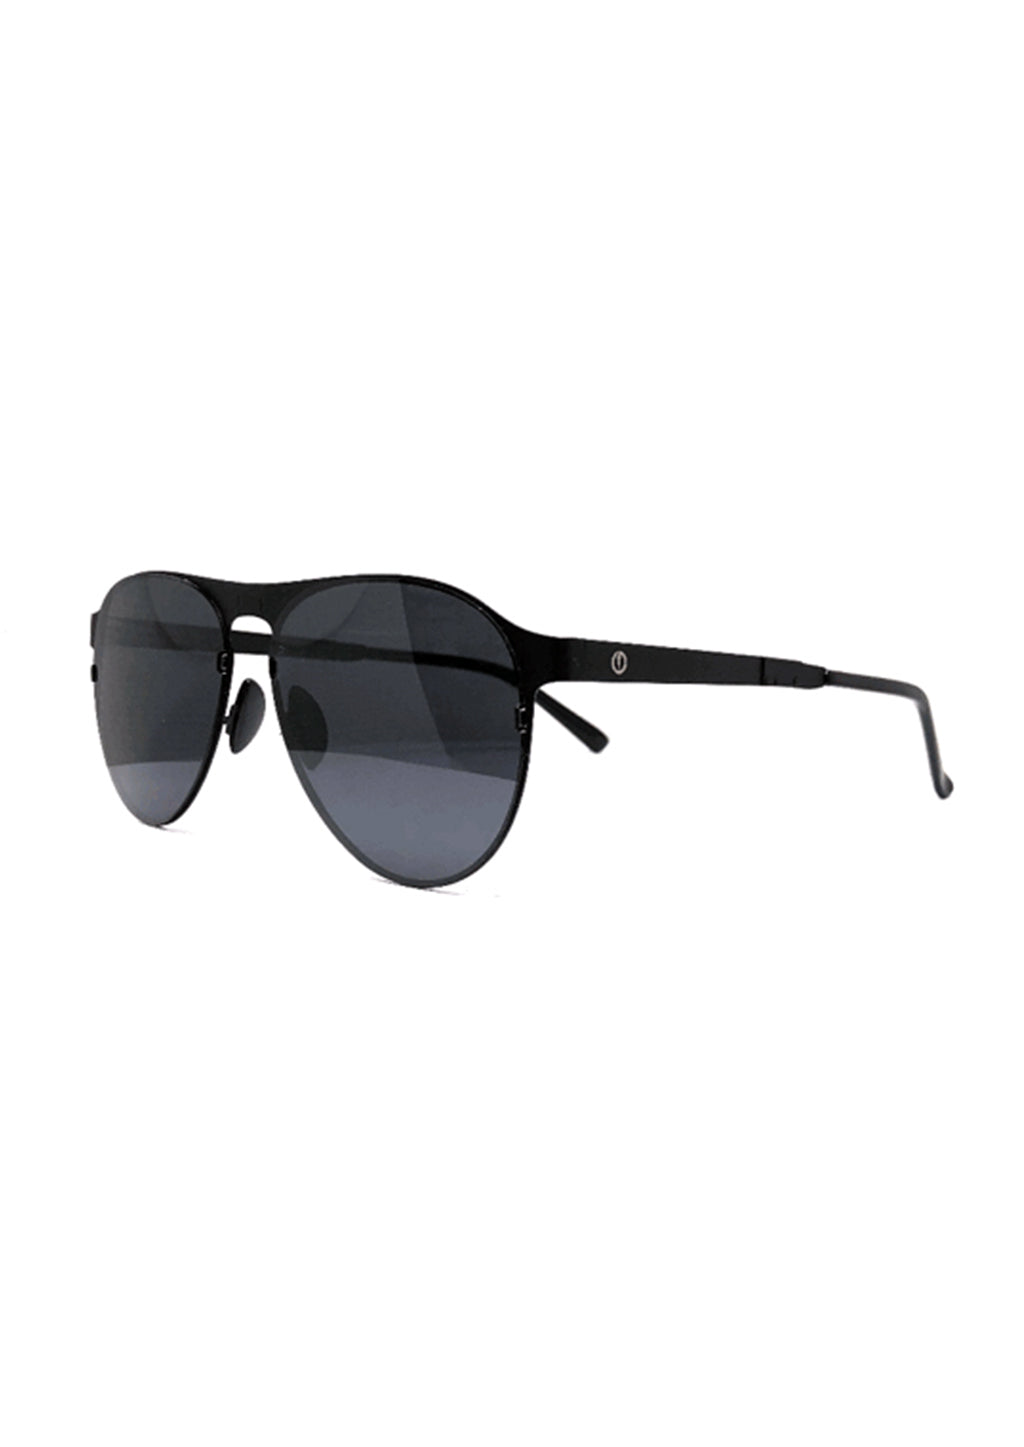 Foldable sunglasses - Scout classic aviator design - Side photo